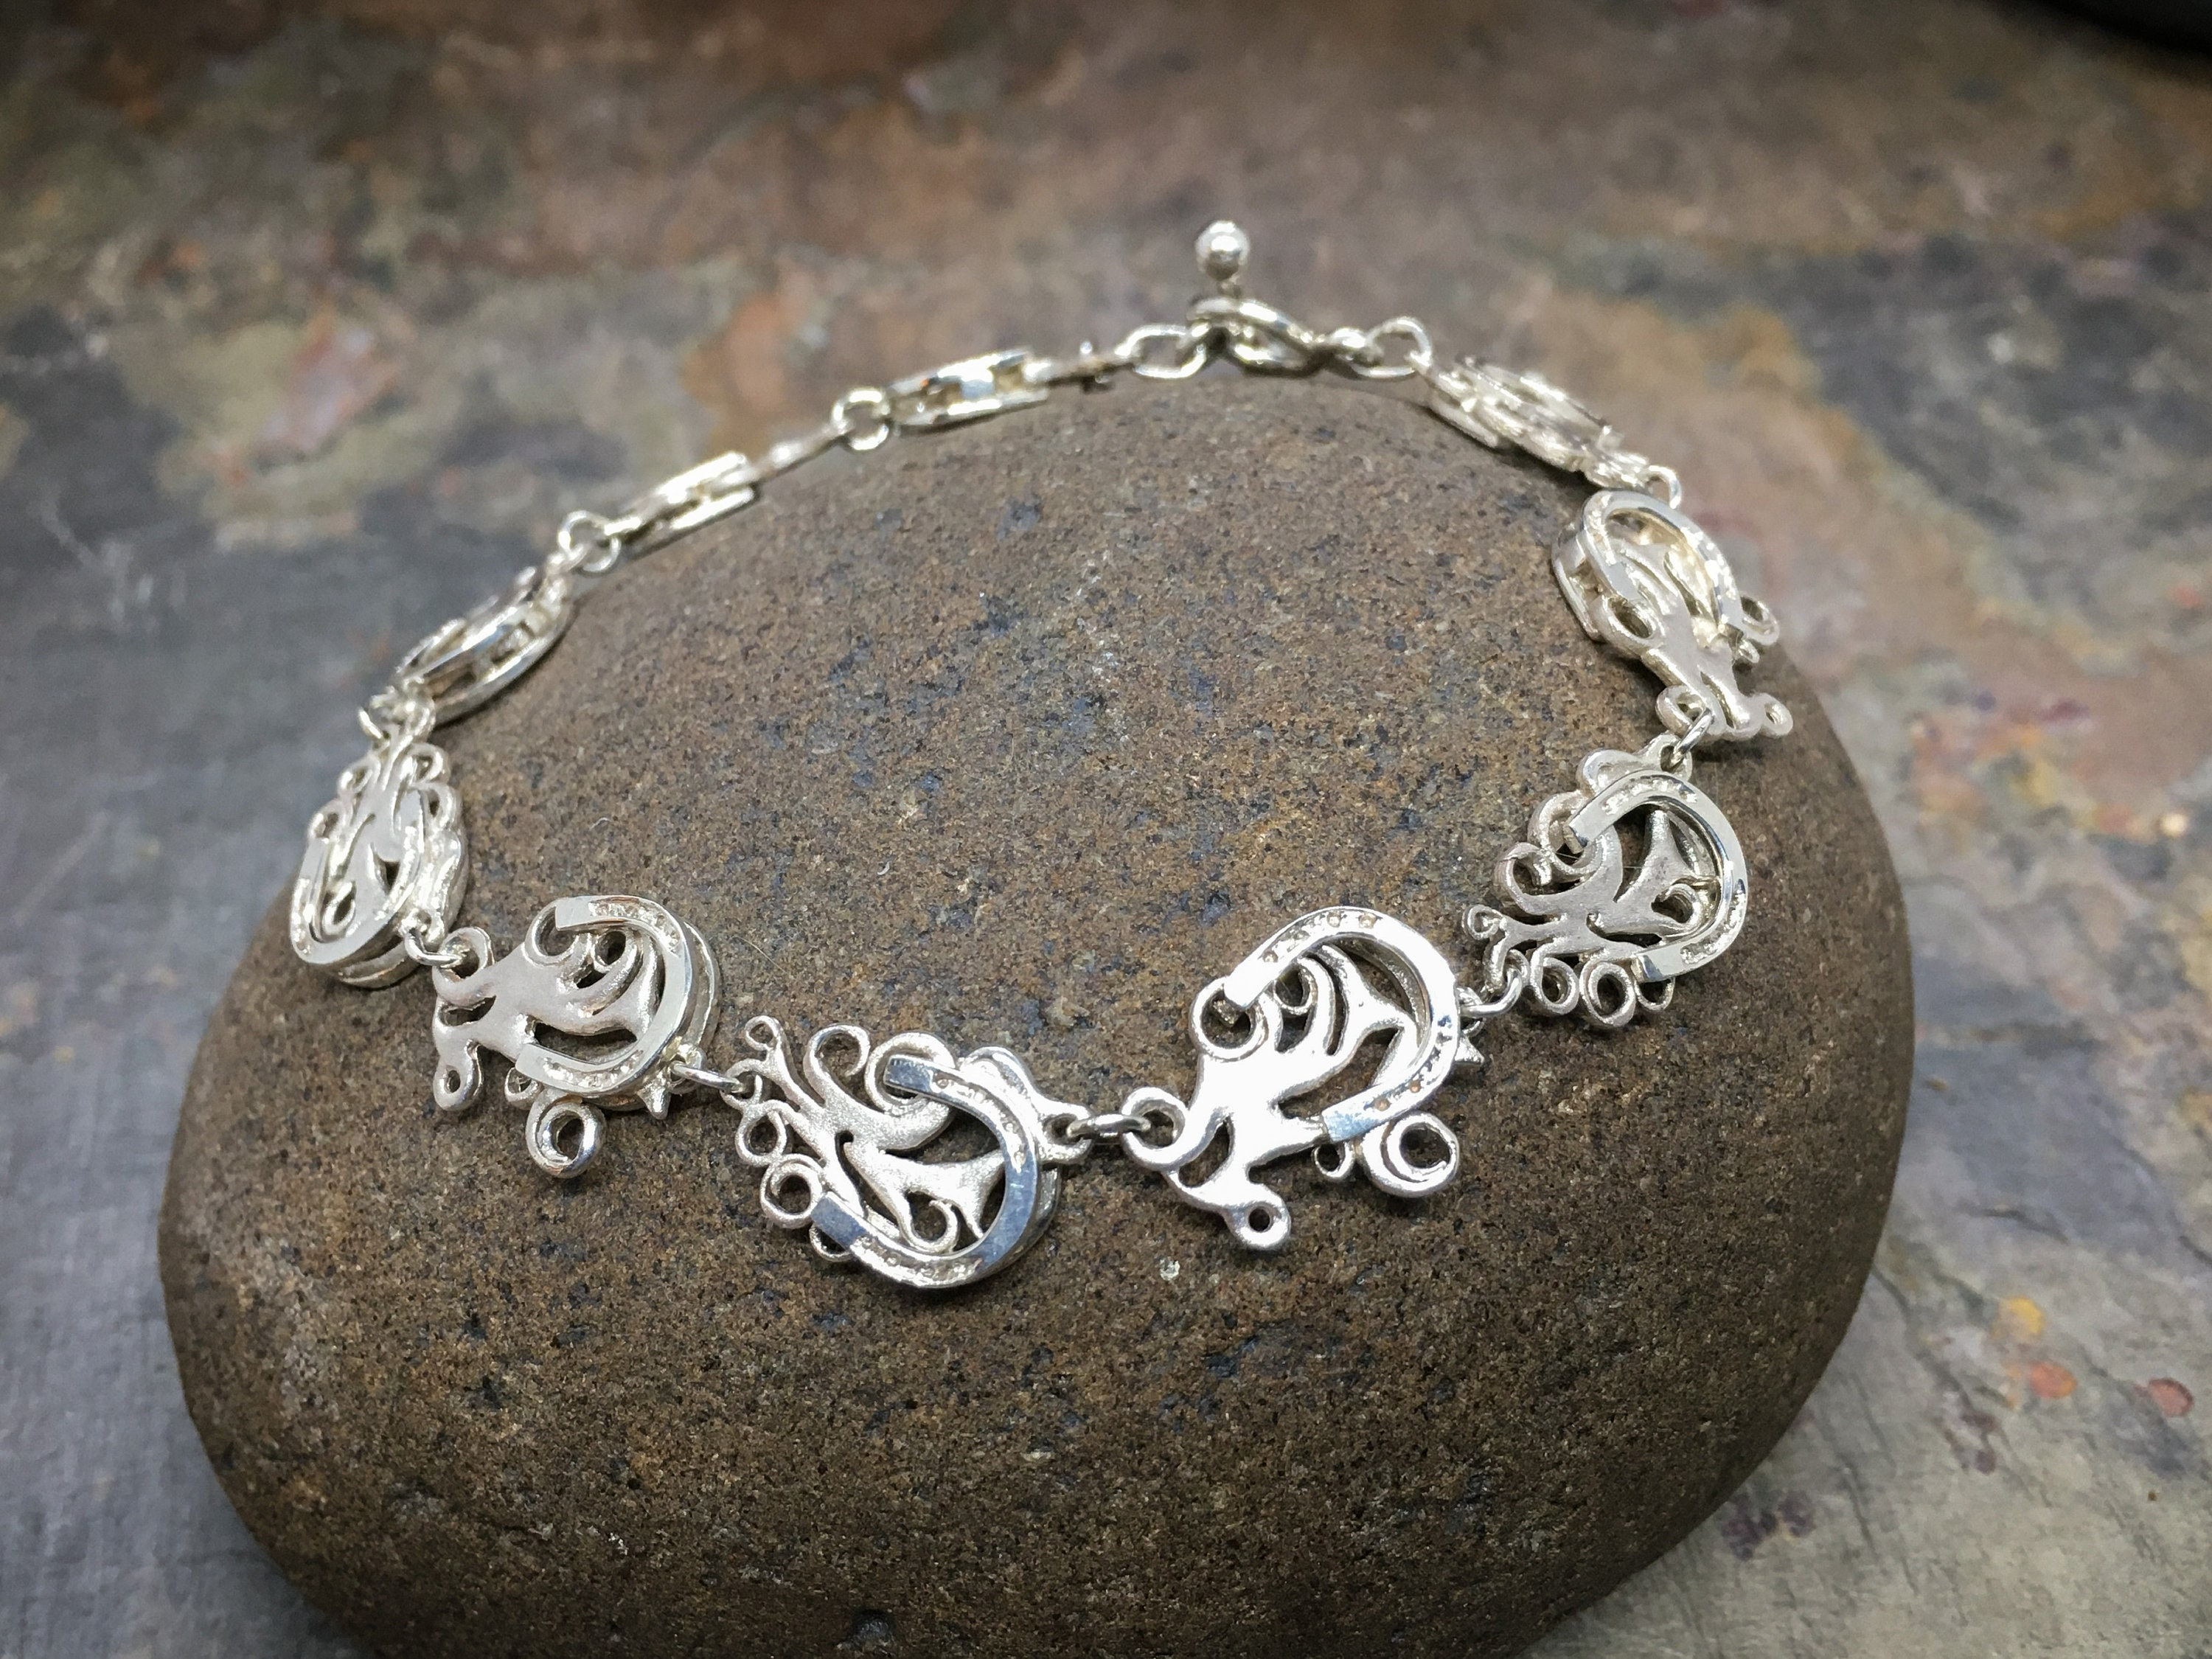 Dusty Trails Horseshoe Bracelet in solid Sterling Silver - High end western Jewelry for equestrian gifts, horse gifts or equine gifts!